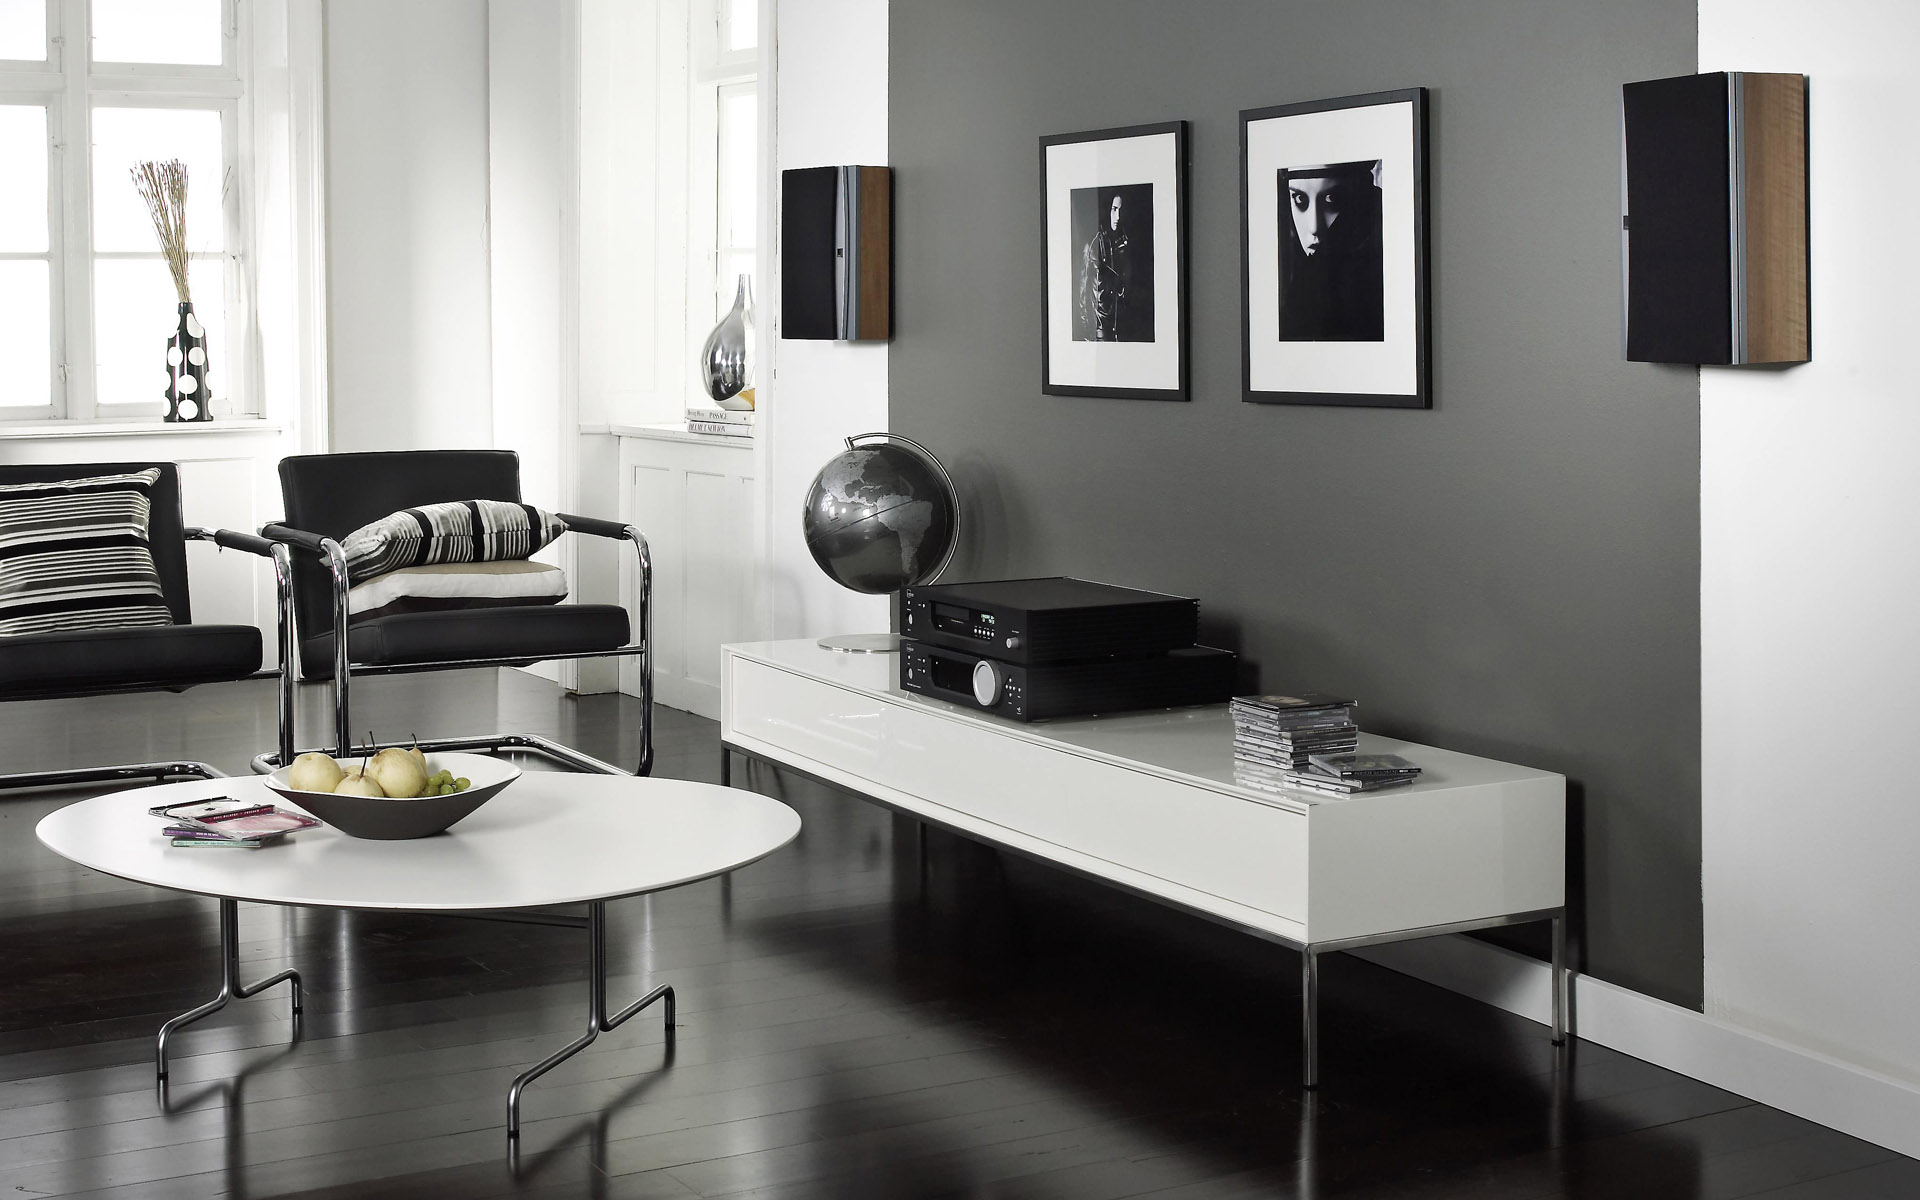 Cozy Design Of The Gray Living Room Ideas With Black And White Wall Ideas Added With Black Floor Ideas And White Rounded Table Ideas